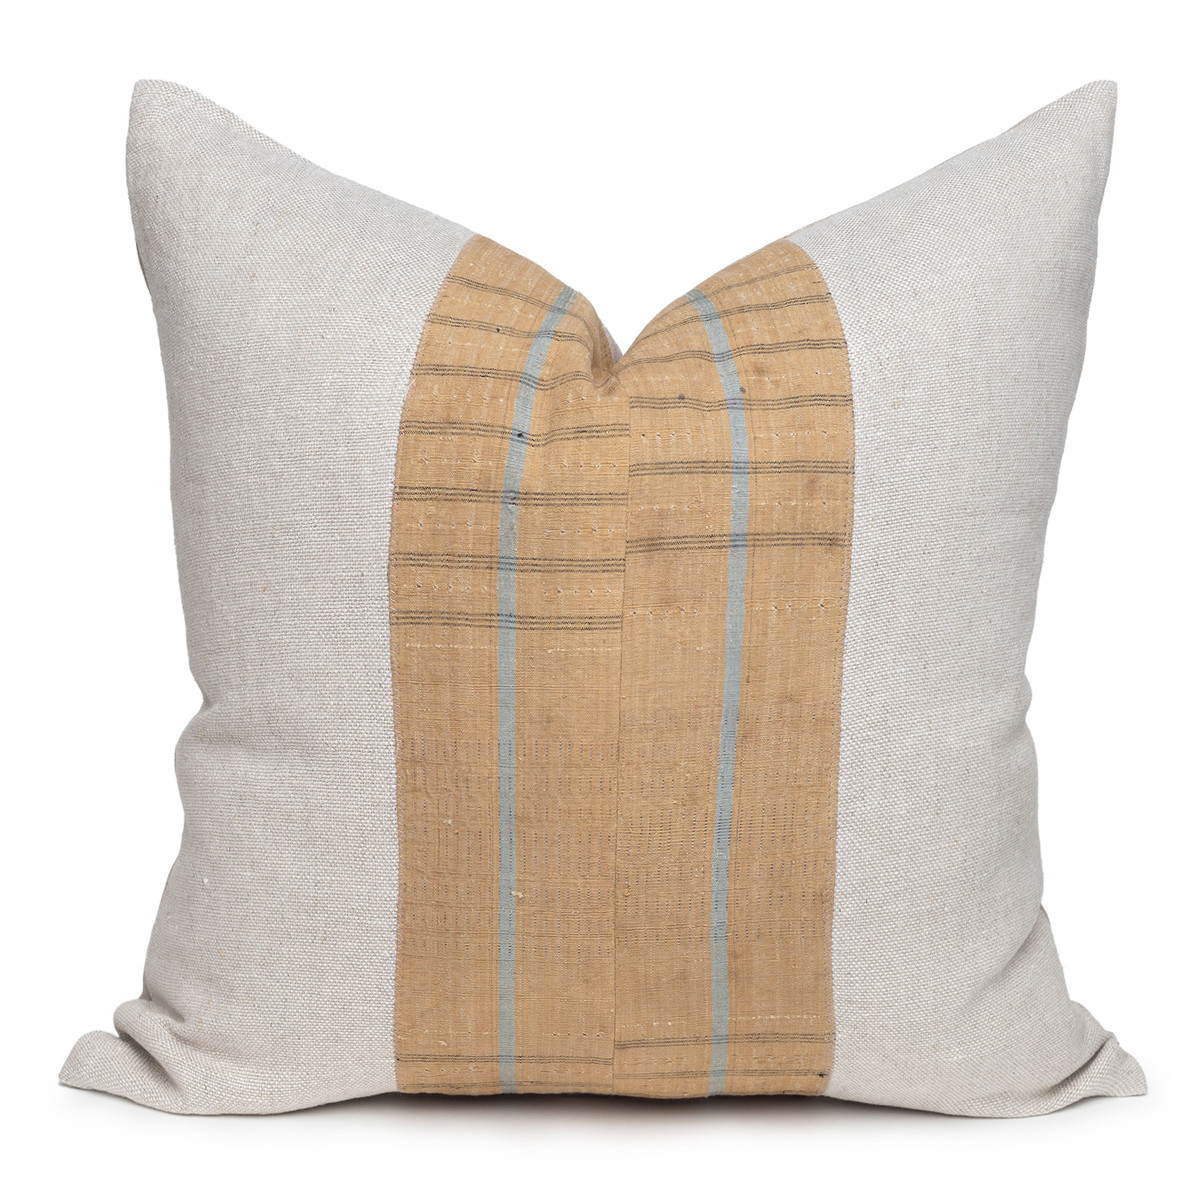 Owen Natural Linen and Aso Oke Pillow - 22- Front View